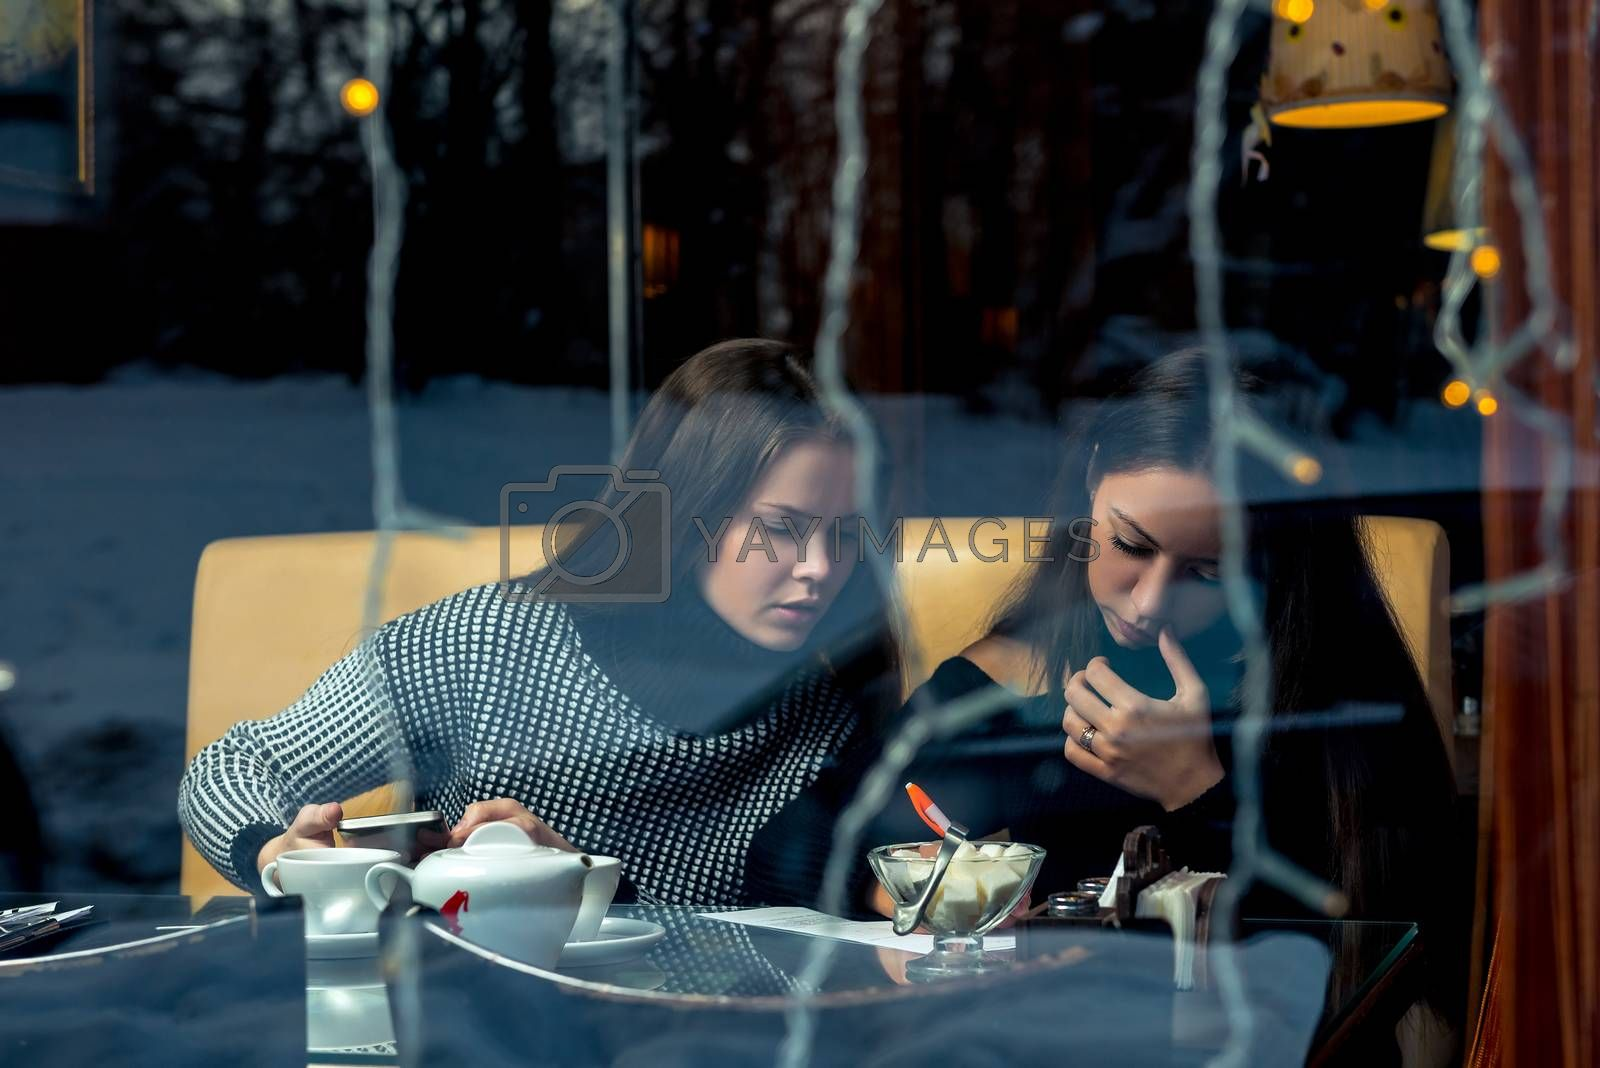 Communication of girlfriends, a meeting in a cafe, shooting behind a glass